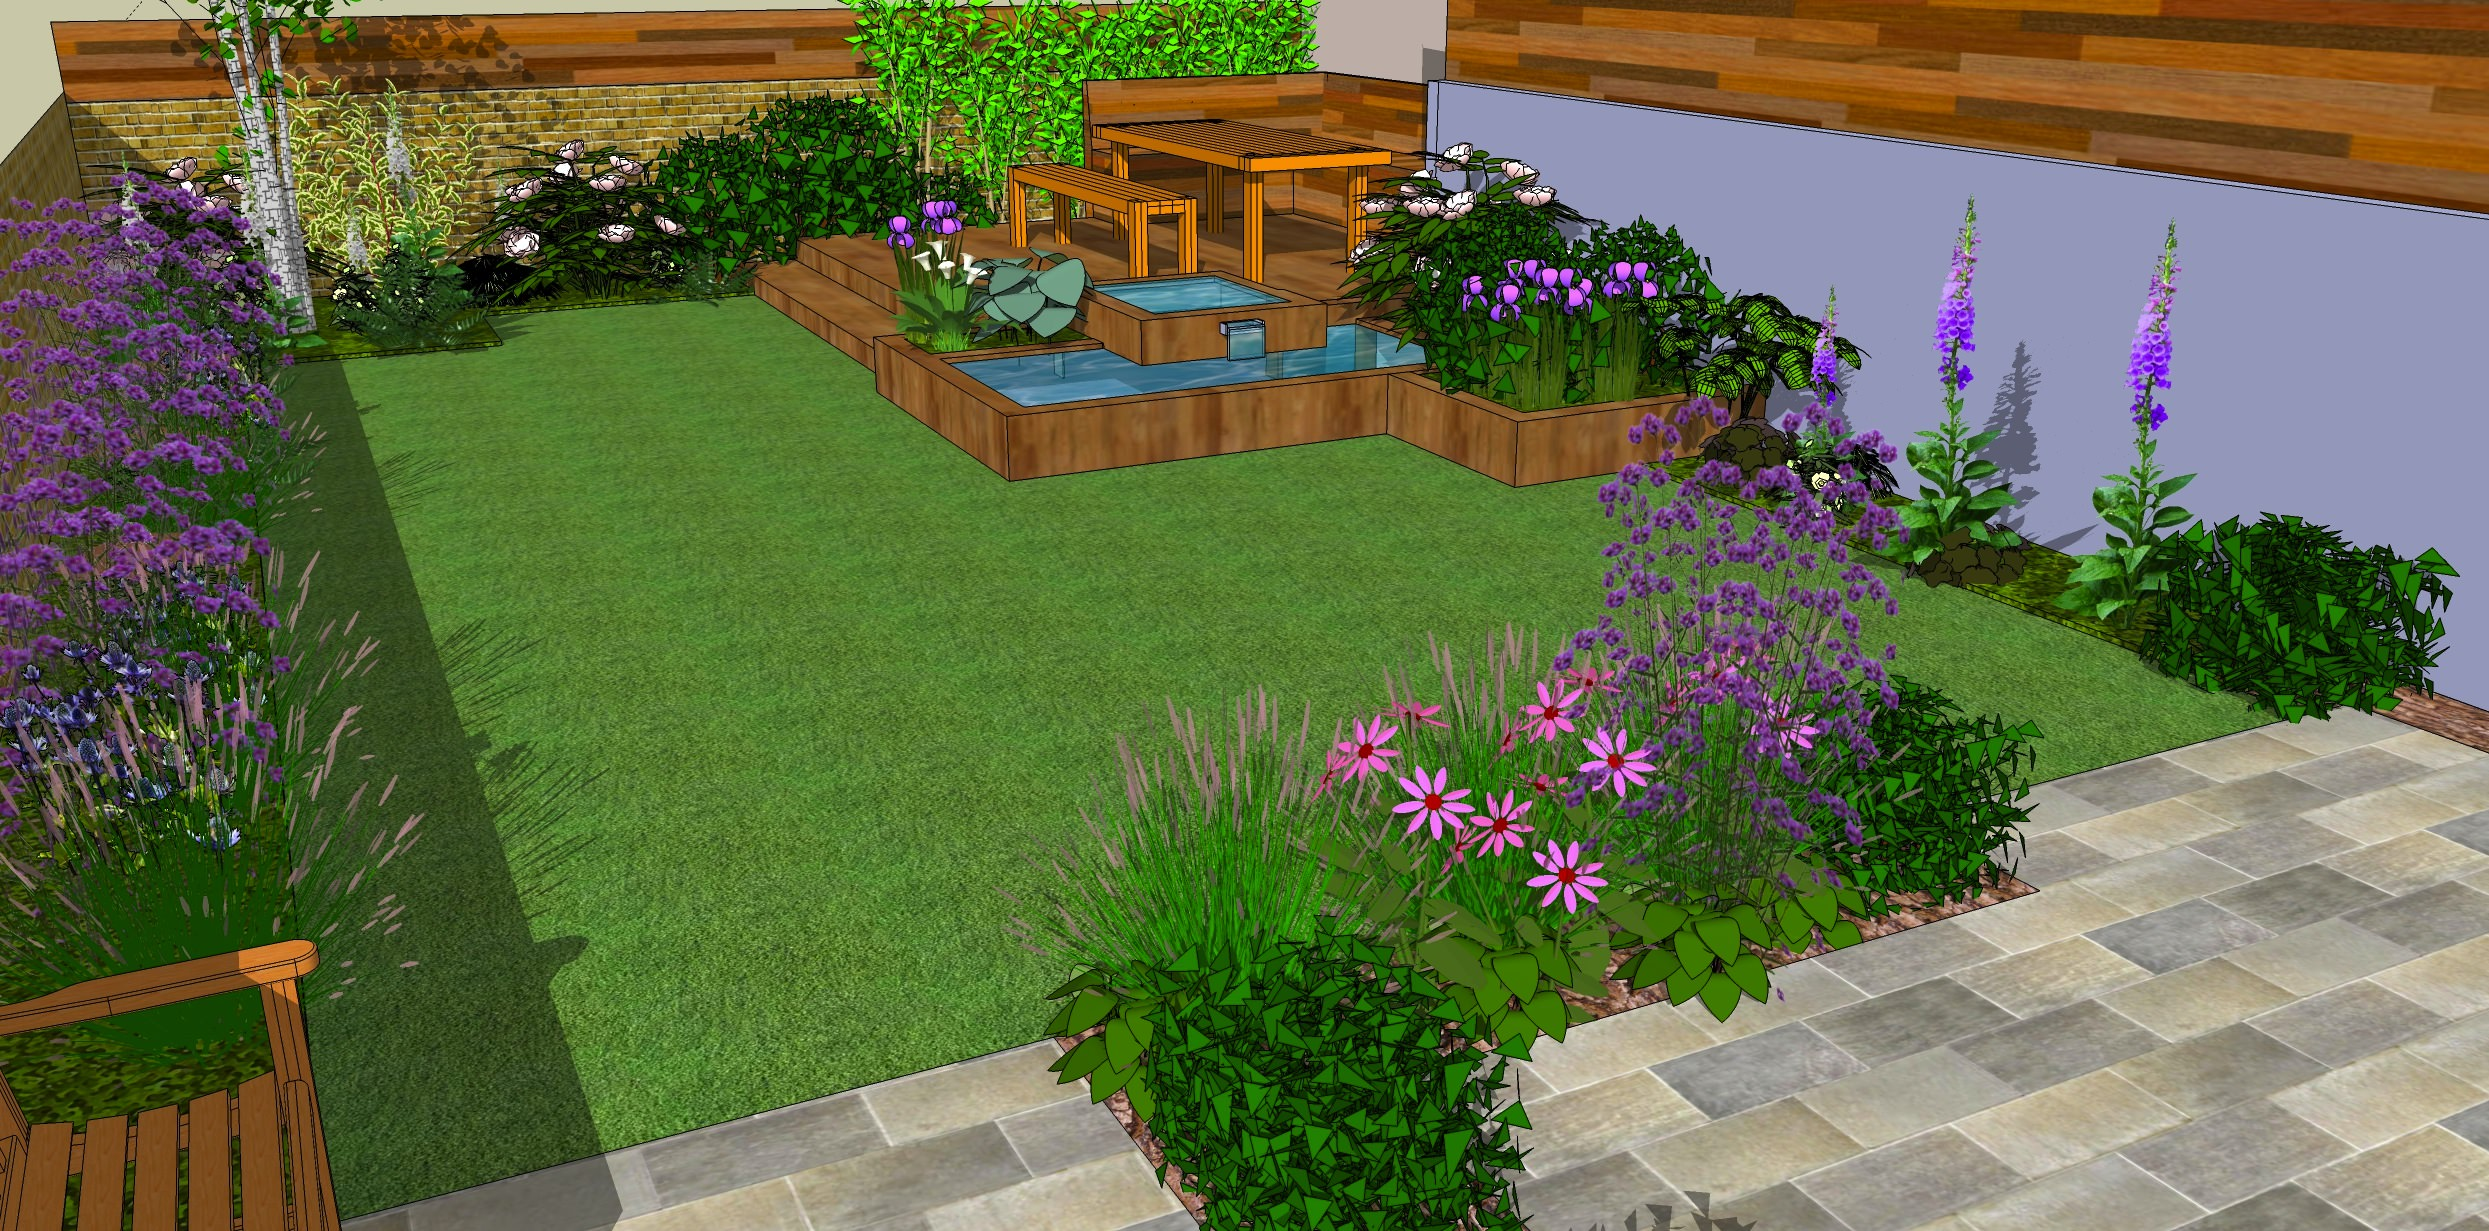 Low maintenance garden designs garden club london for Back garden designs